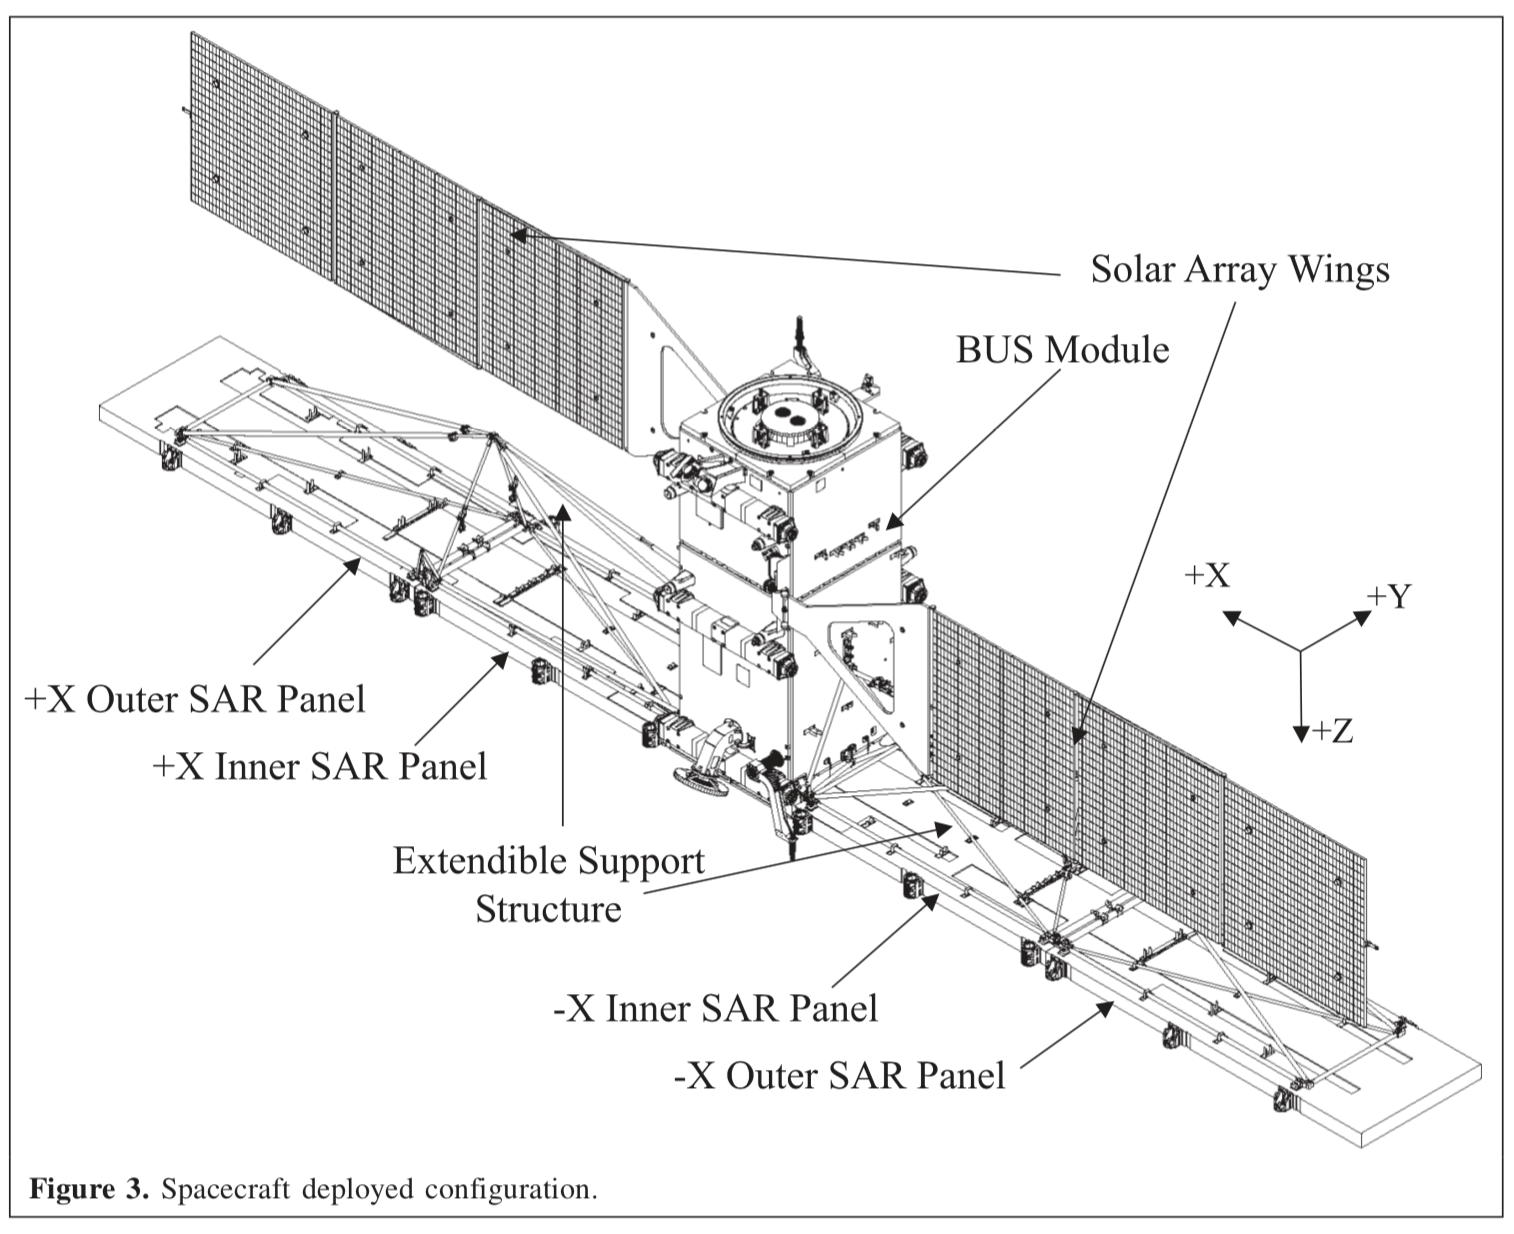 The RADARSAT-2 satellite deployed configuration diagram